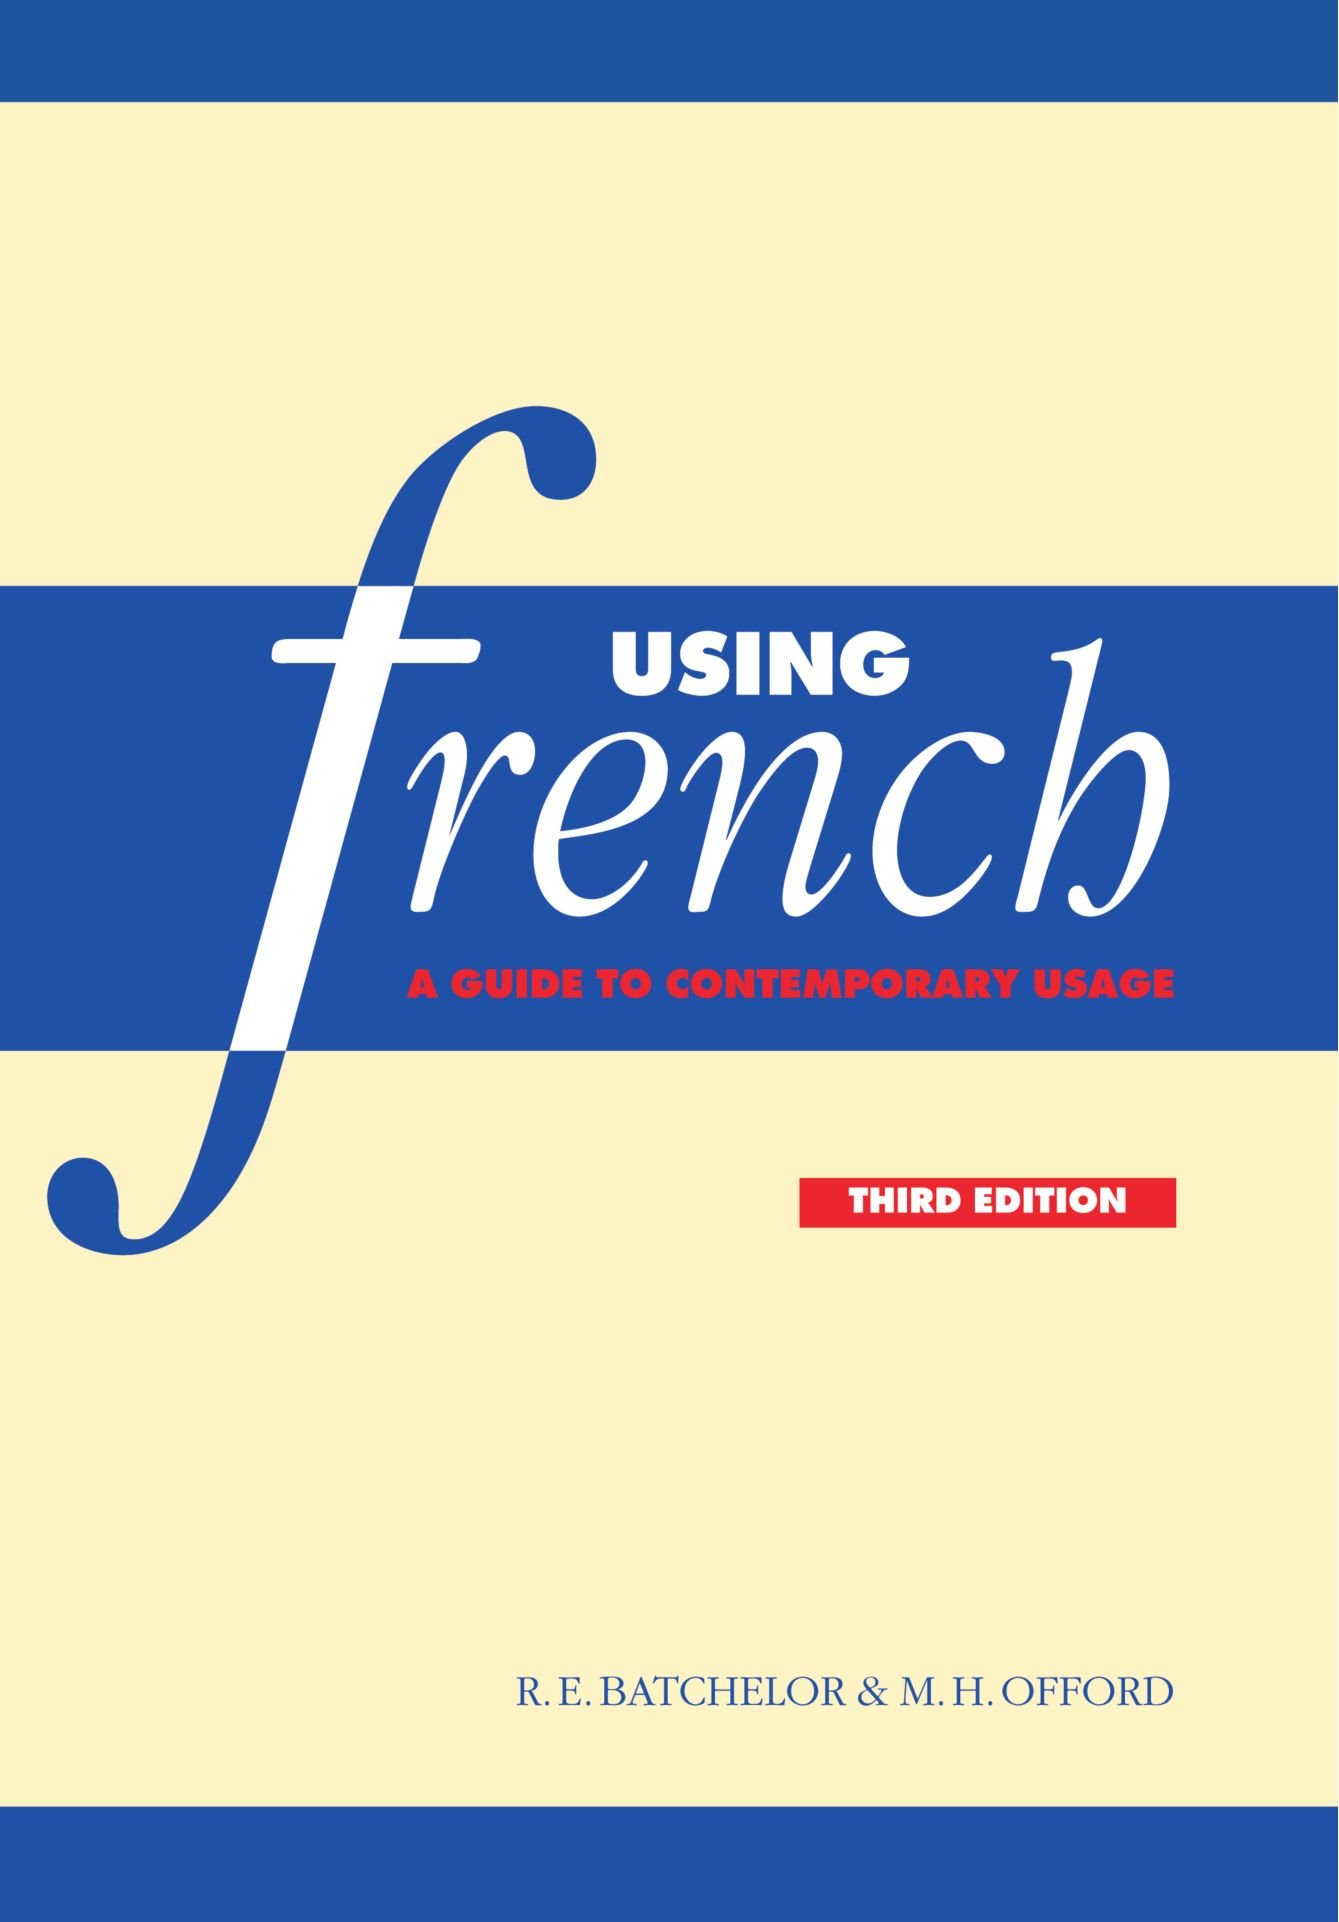 Using french a guide to contemporary usage